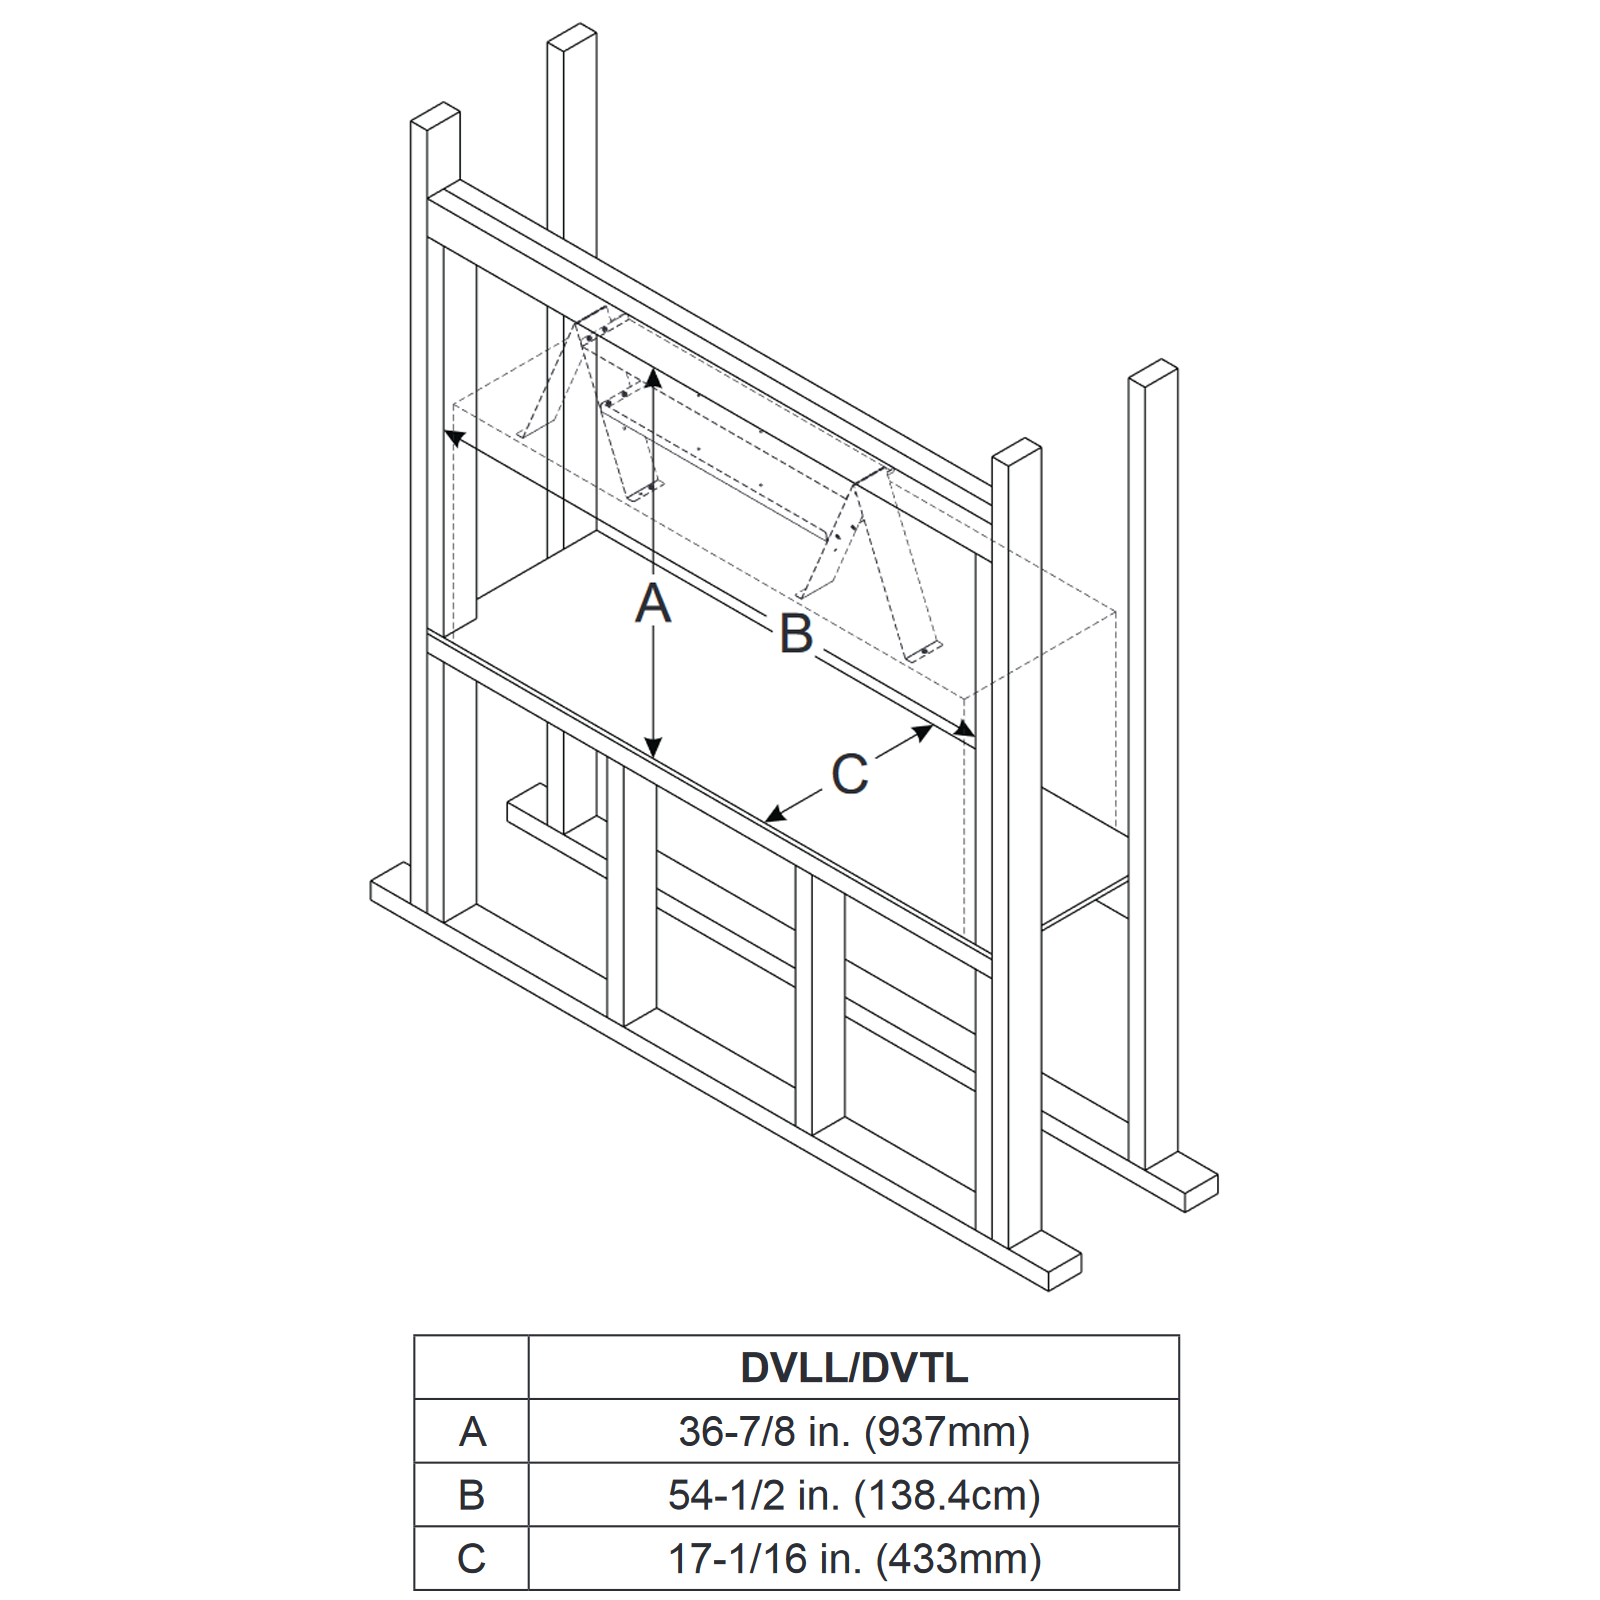 DVTL41 Technical Drawing 2